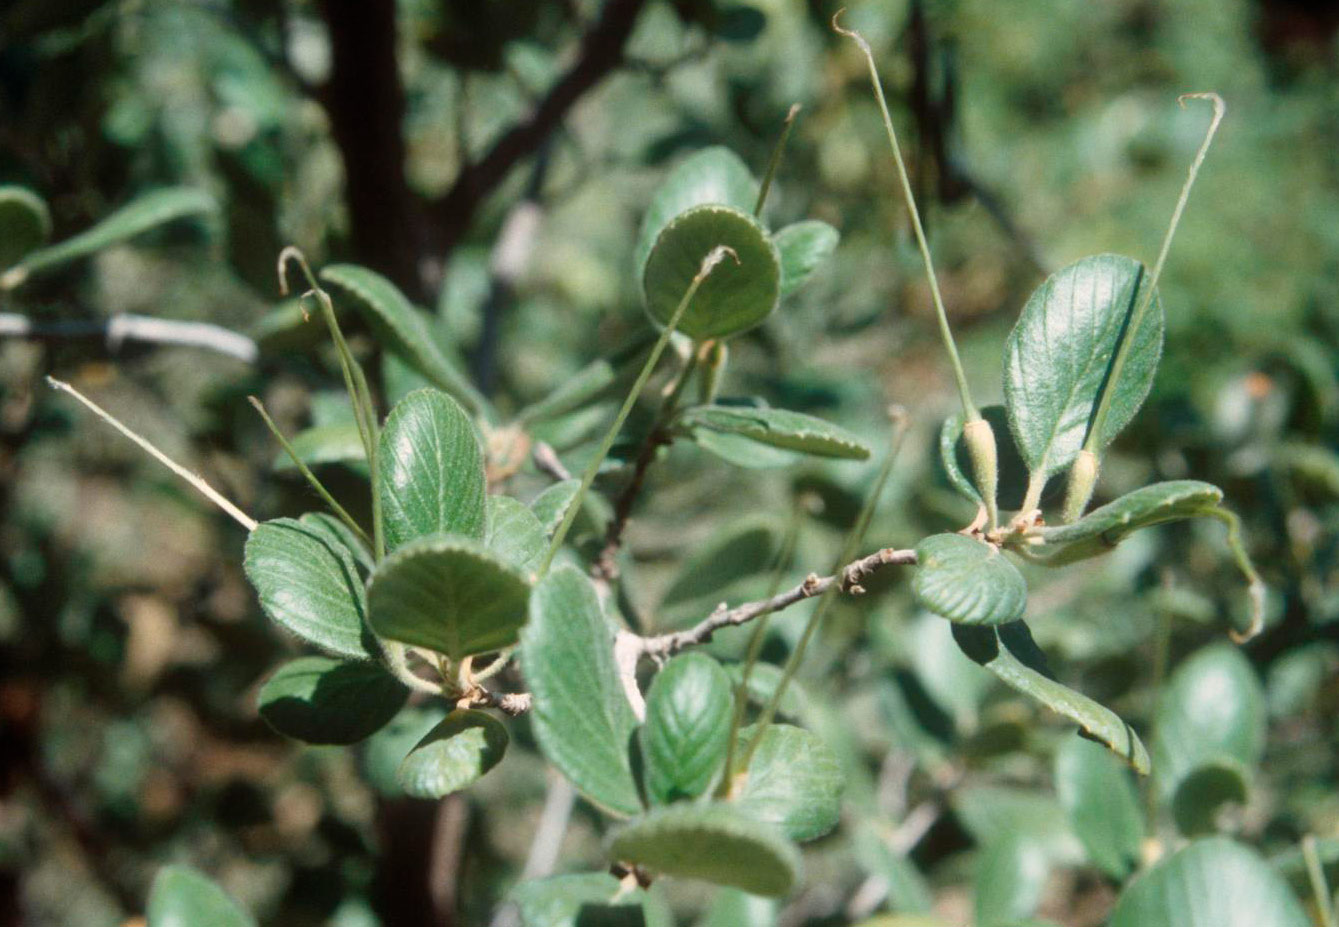 The Catalina Island mountain mahogany (Cercocarpus traskiae) is considered to be one of the rarest shrubs in the continental United States. Photo credit: Michael Wall.